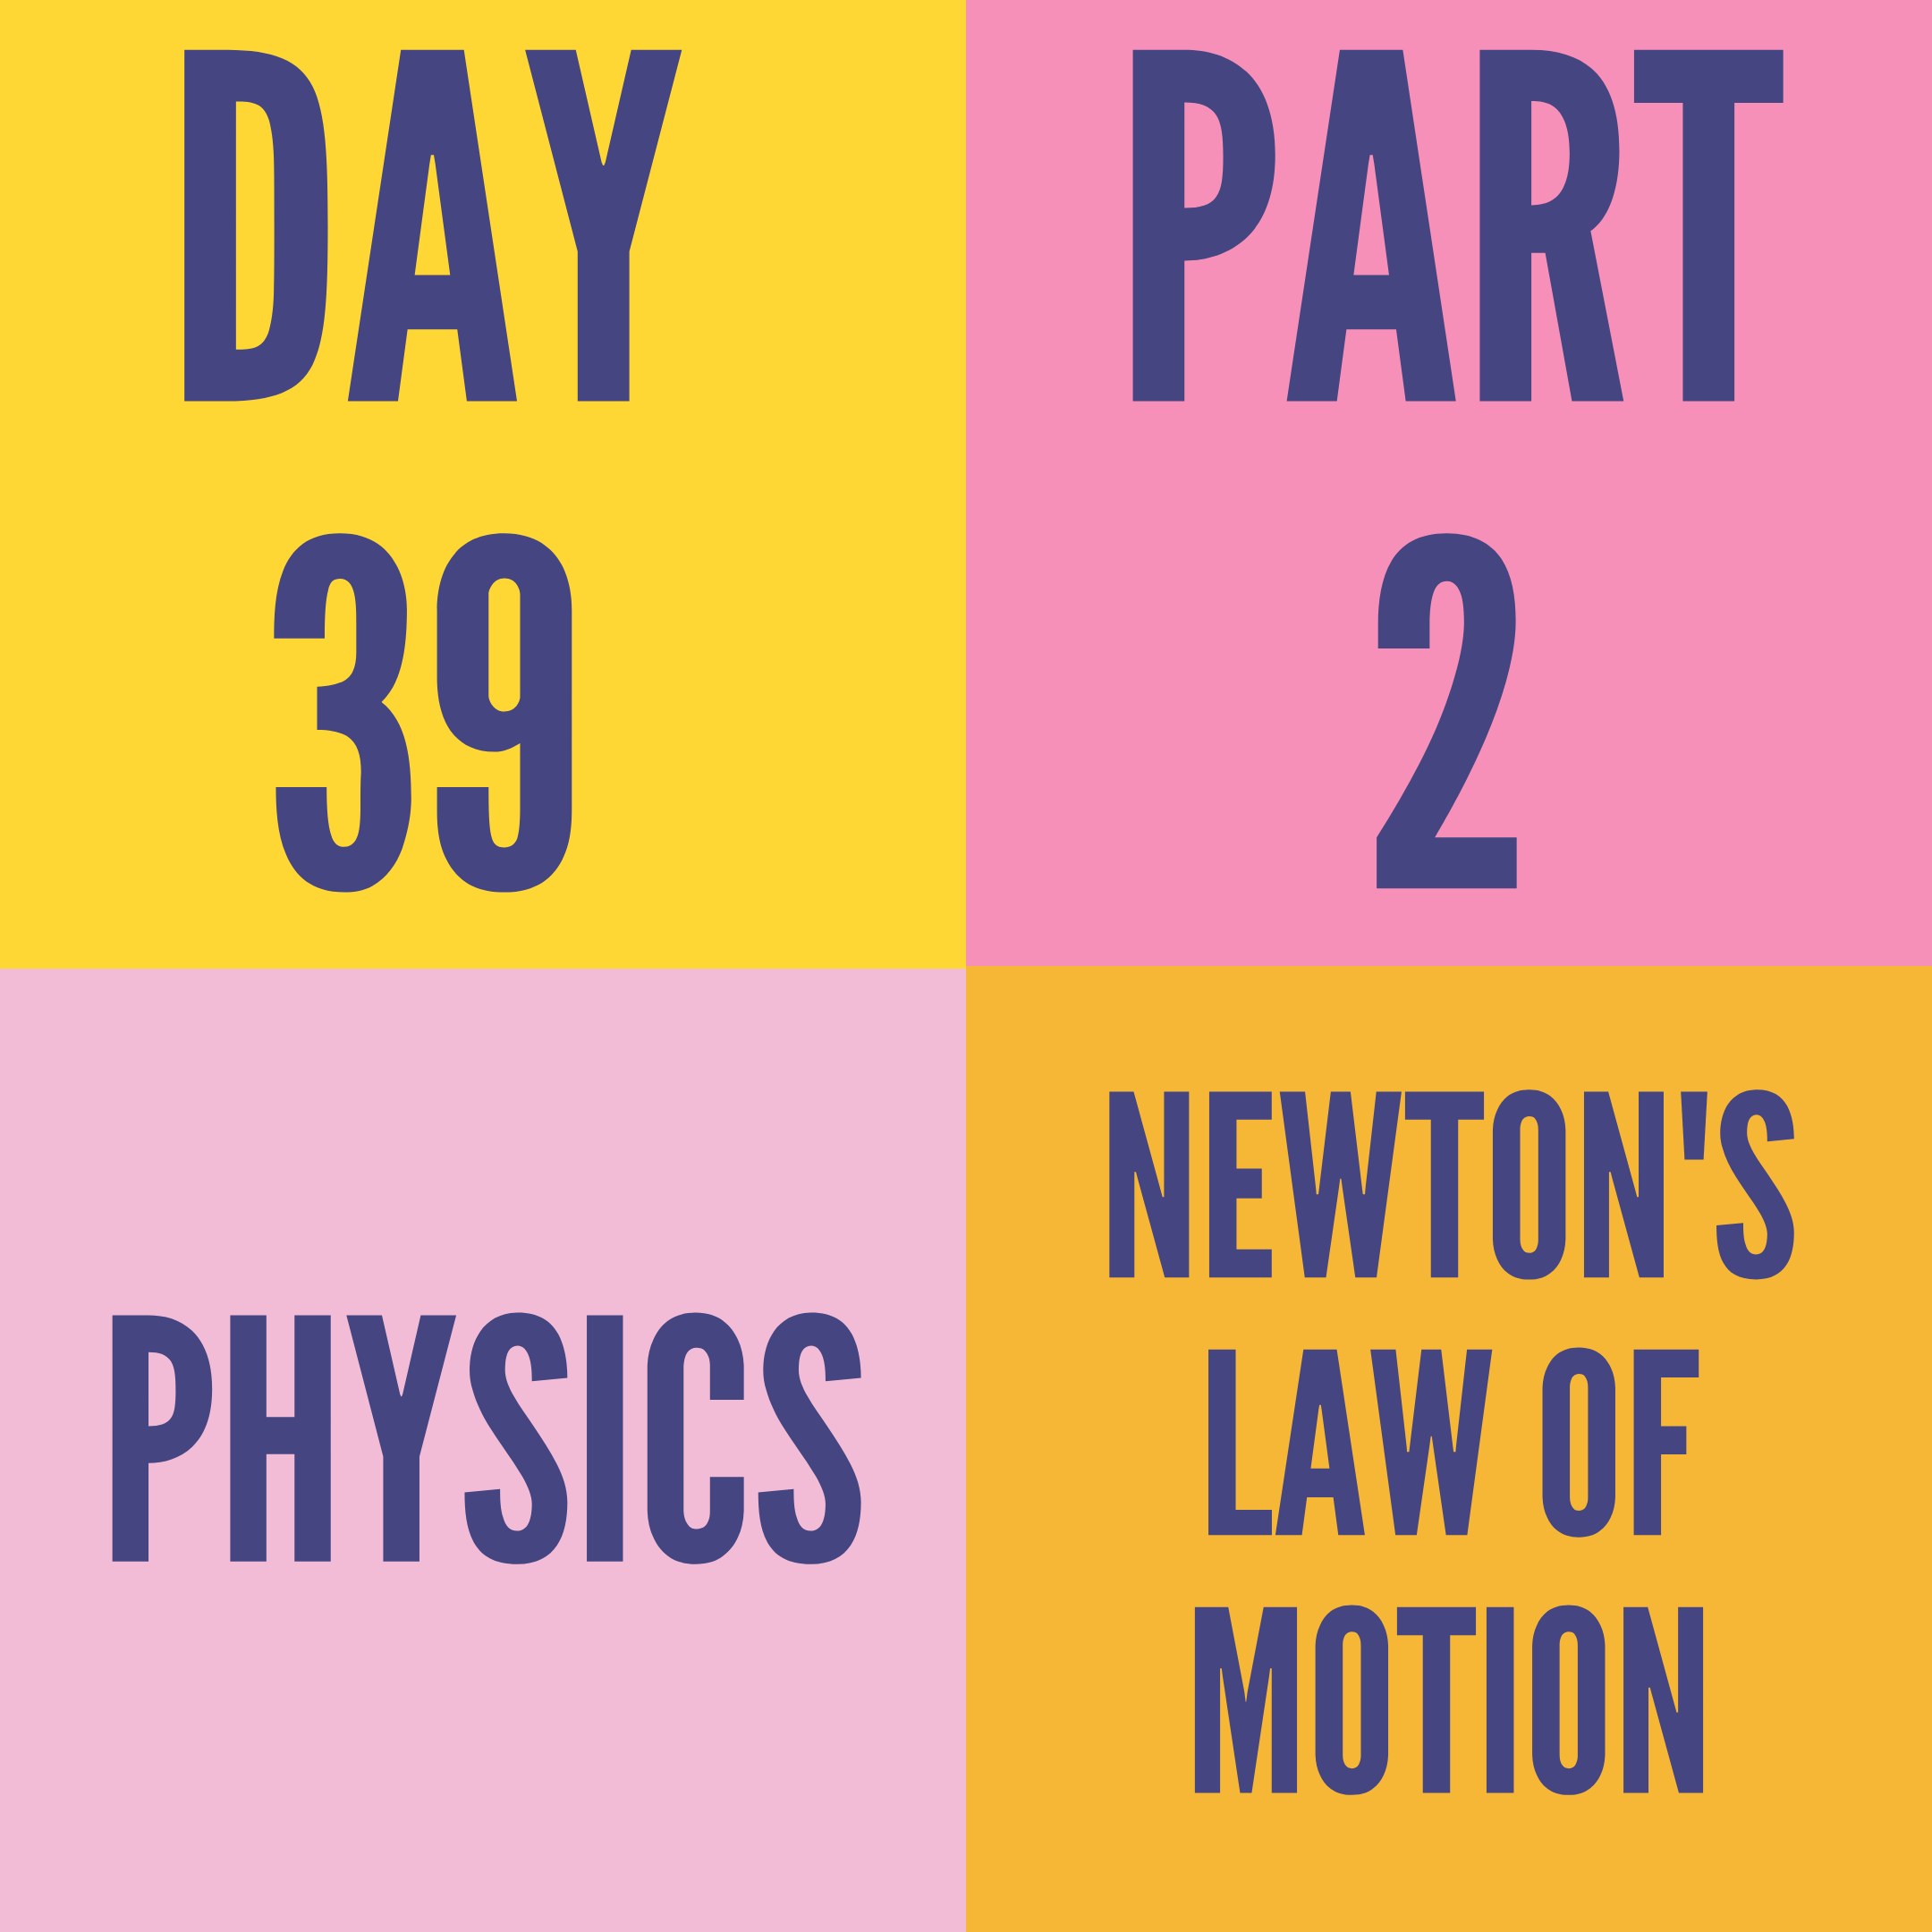 DAY-39 PART-2 NEWTON'S LAW OF MOTION